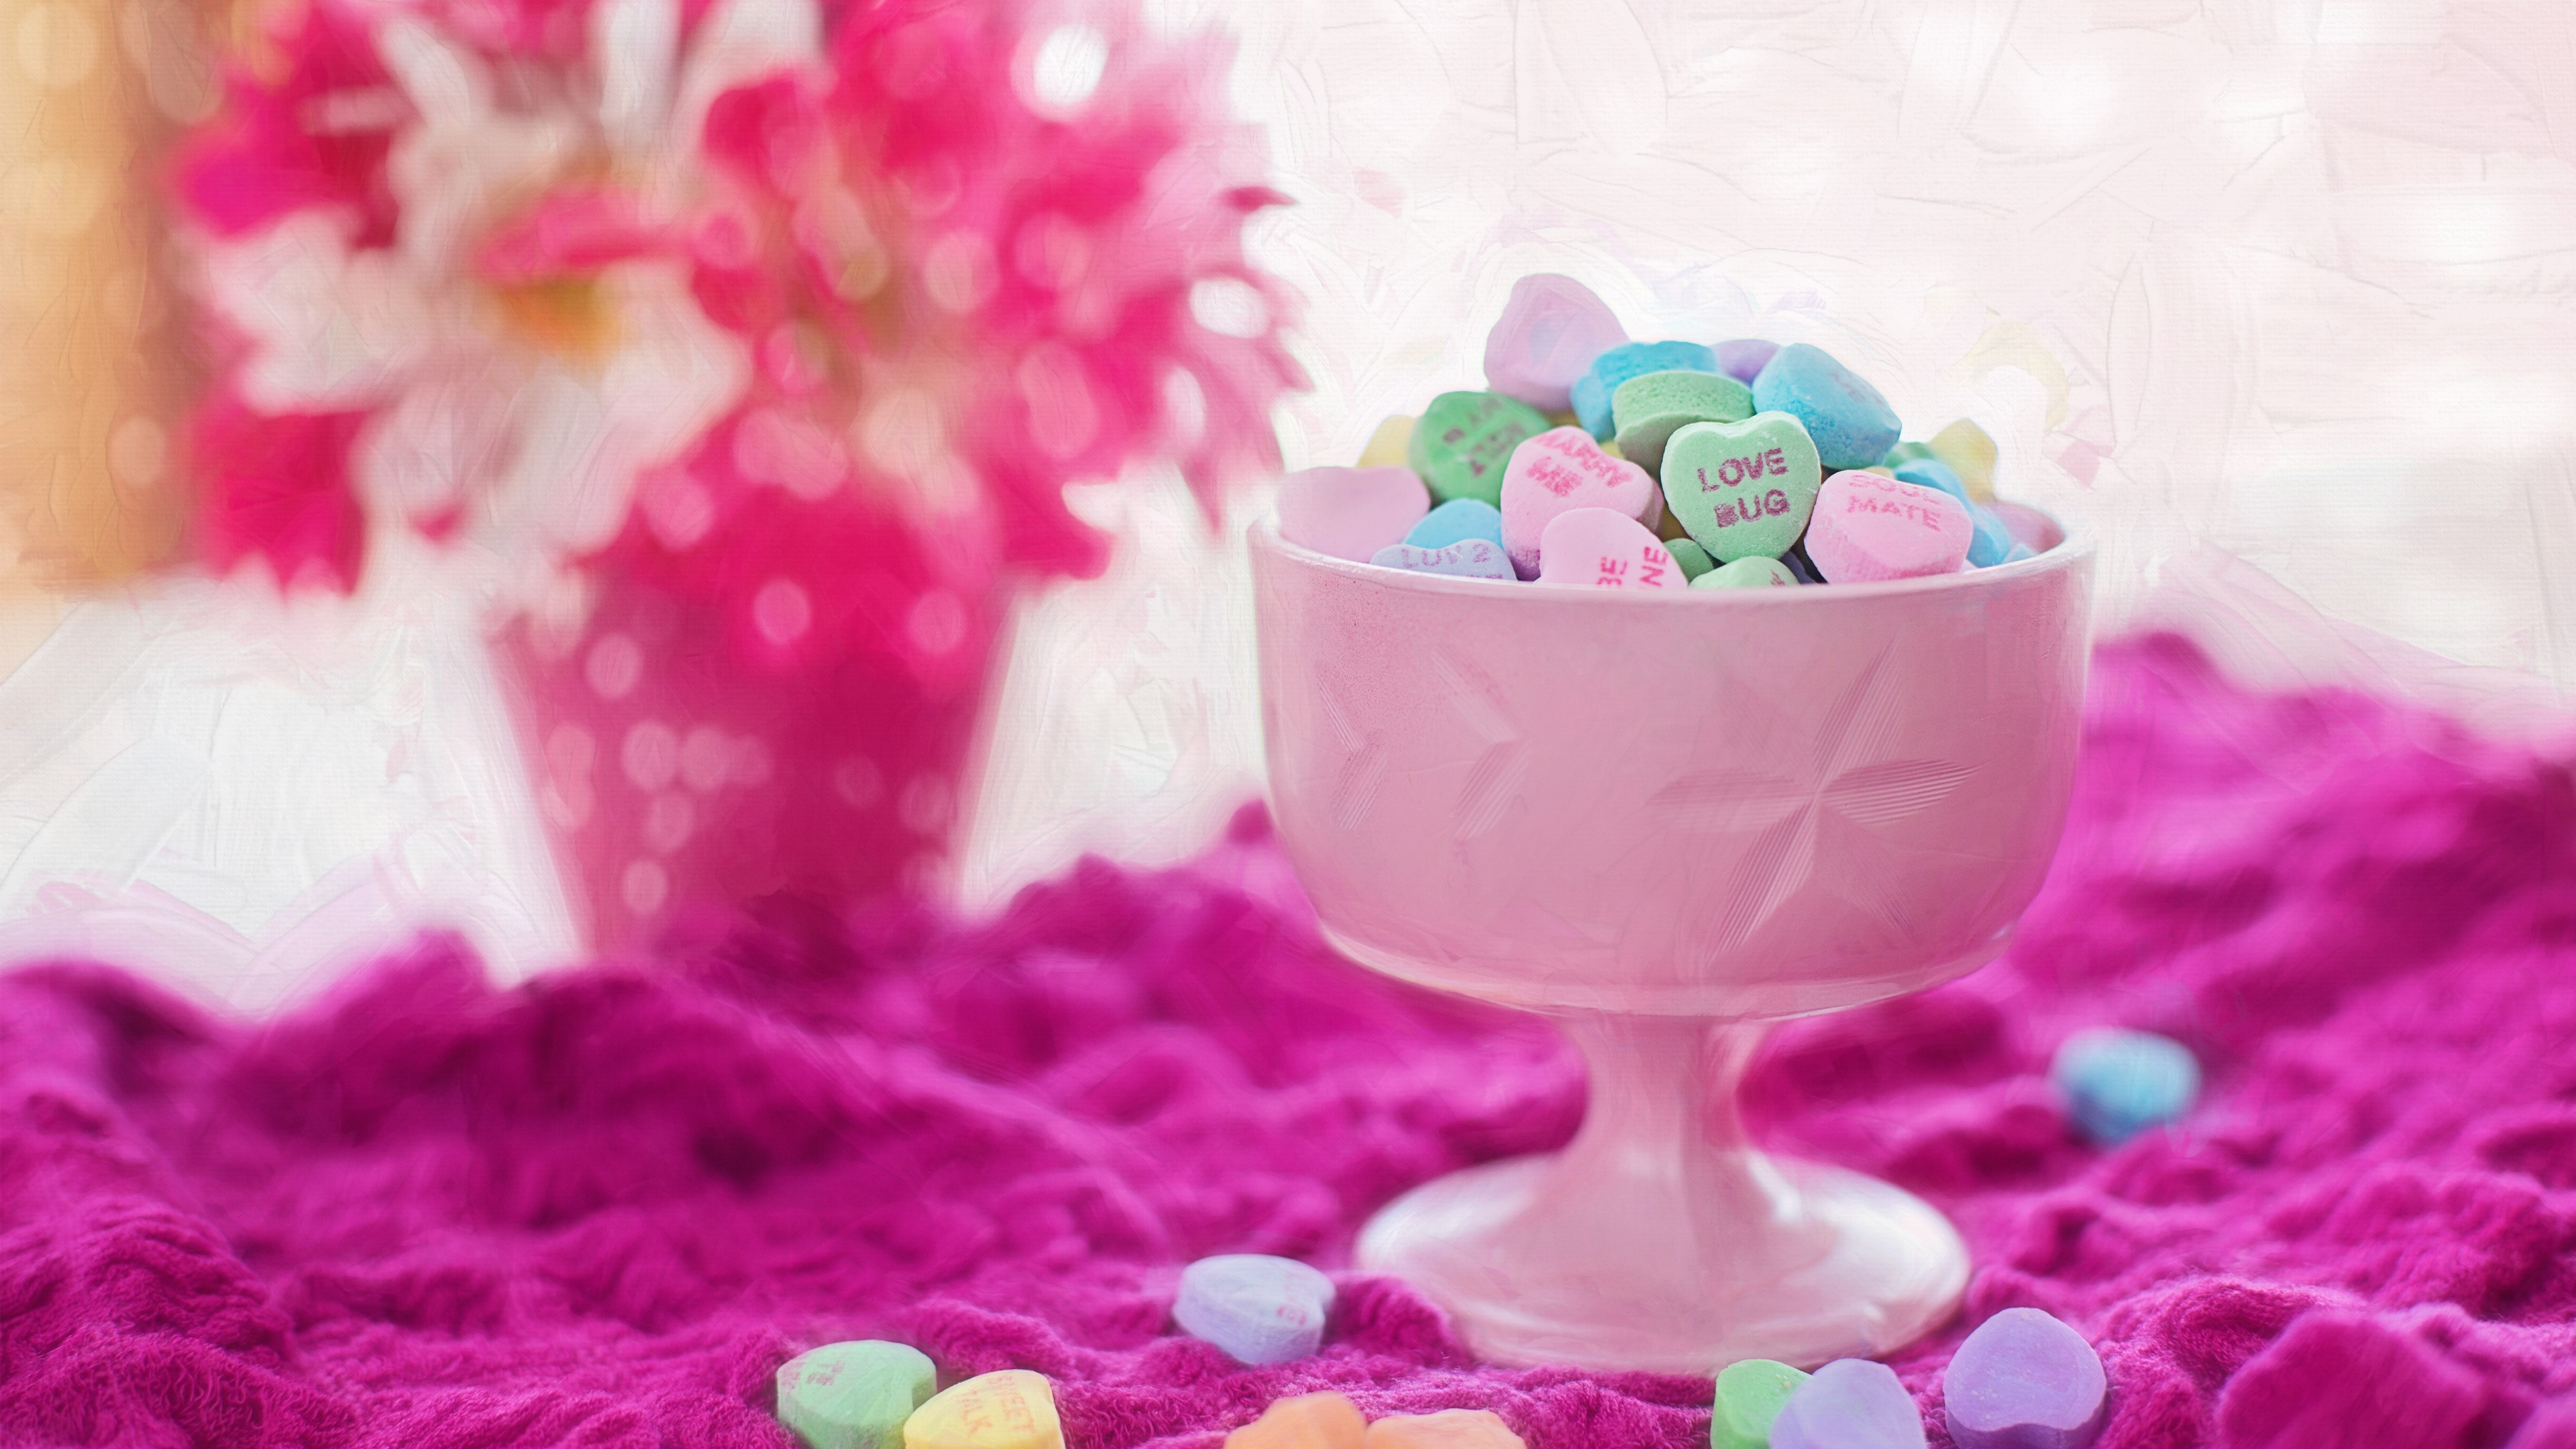 Valentine Love Hearts Candies Wallpapers In Jpg Format For Free Download